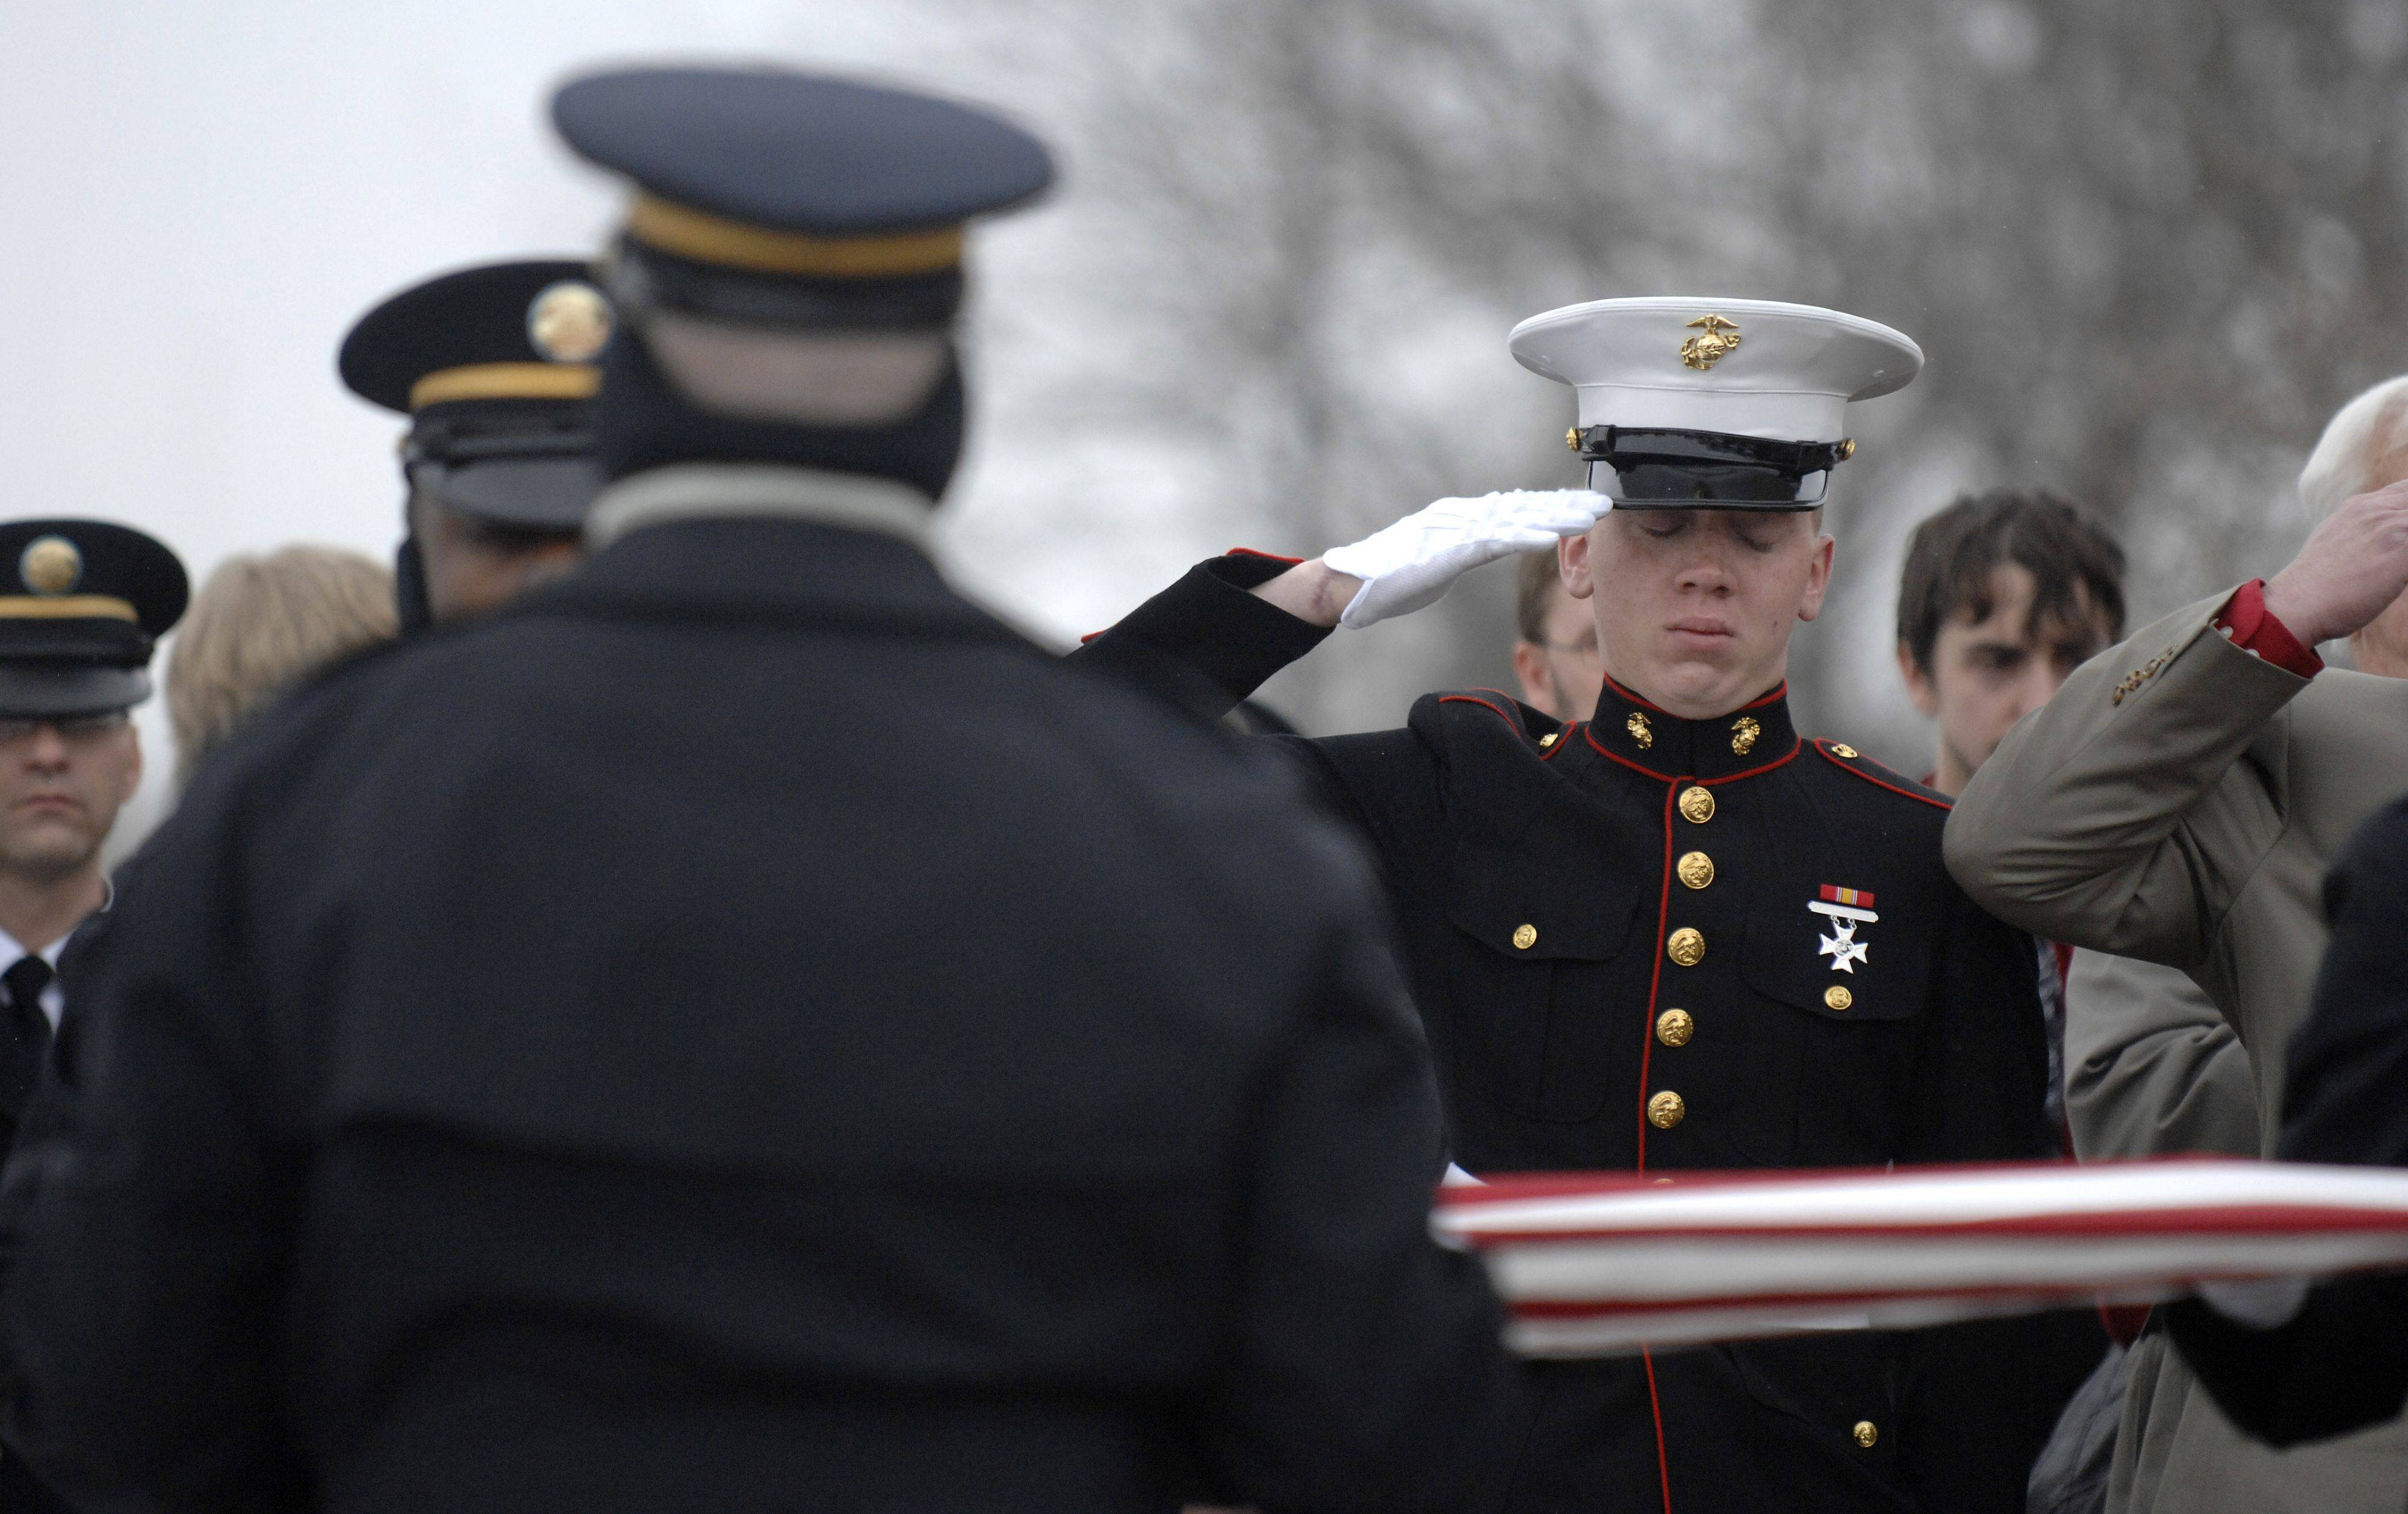 Carl Patterson, brother of Spc. Christopher A. Patterson, salutes and closes his eyes while Taps is played during full military honors outside Immanuel Lutheran Church in Batavia on Saturday, January 21.